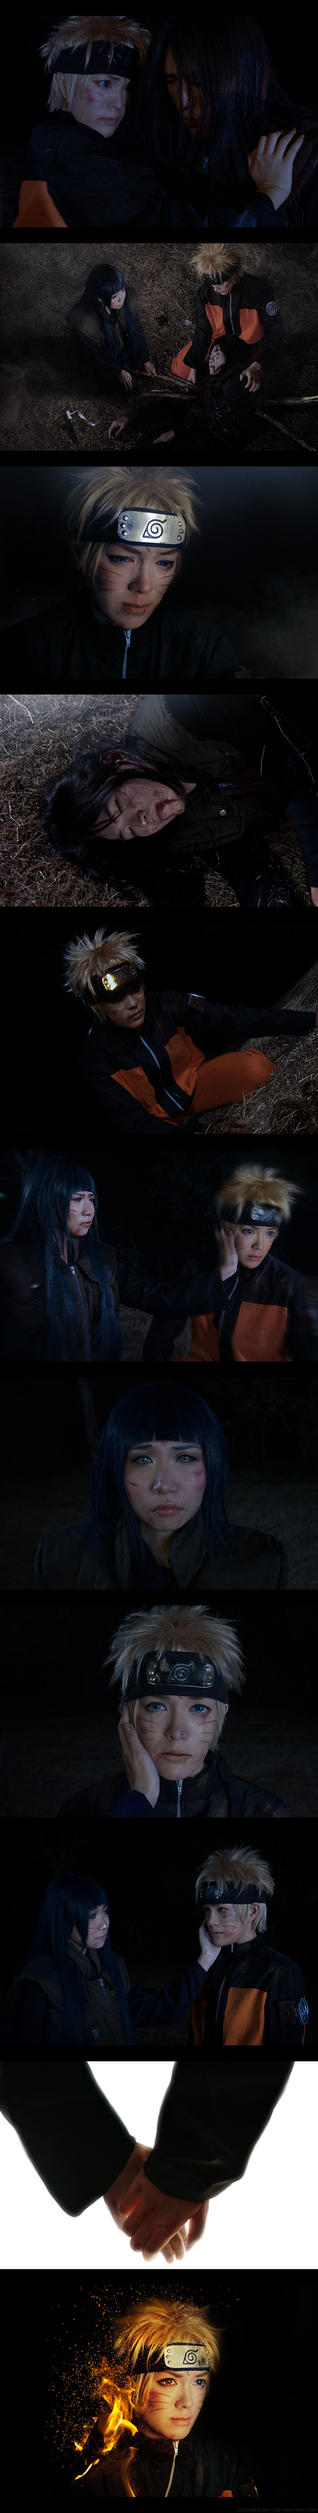 Naruto Chapter 615 Live Action by behindinfinity